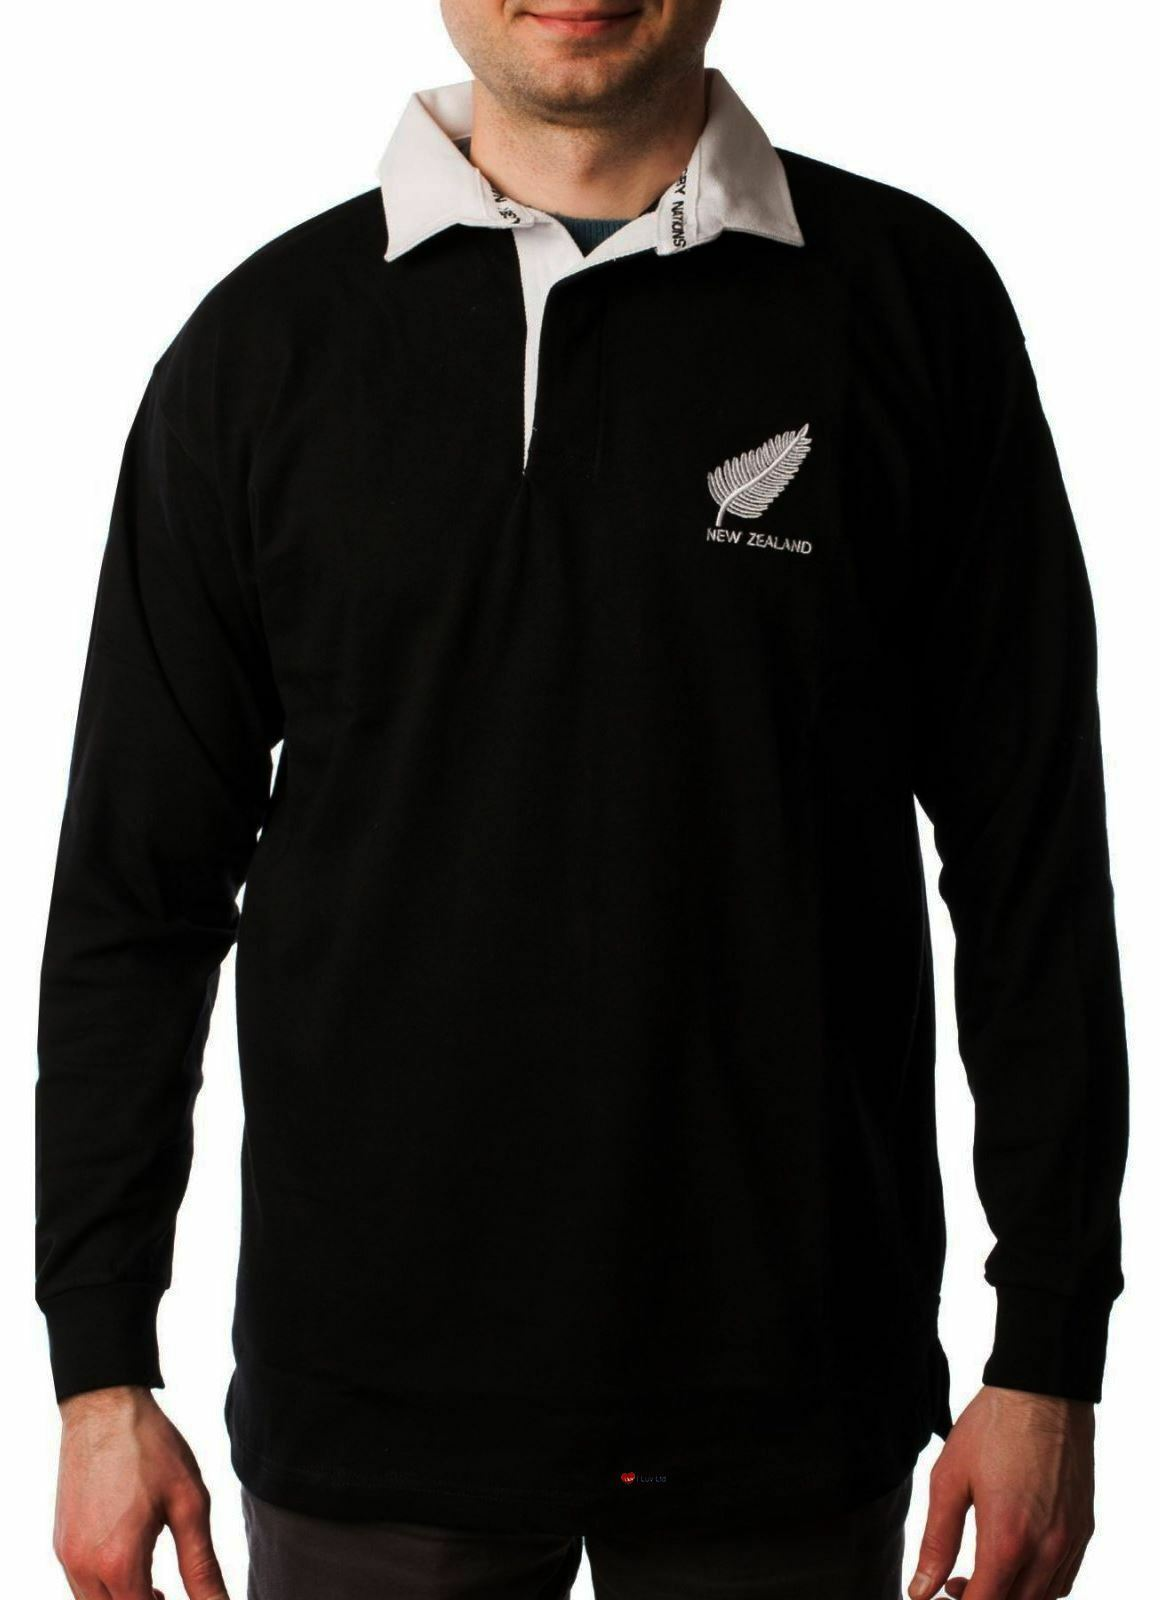 Mens Long sleeve navy New Zealand Rugby Shirt - X-Small